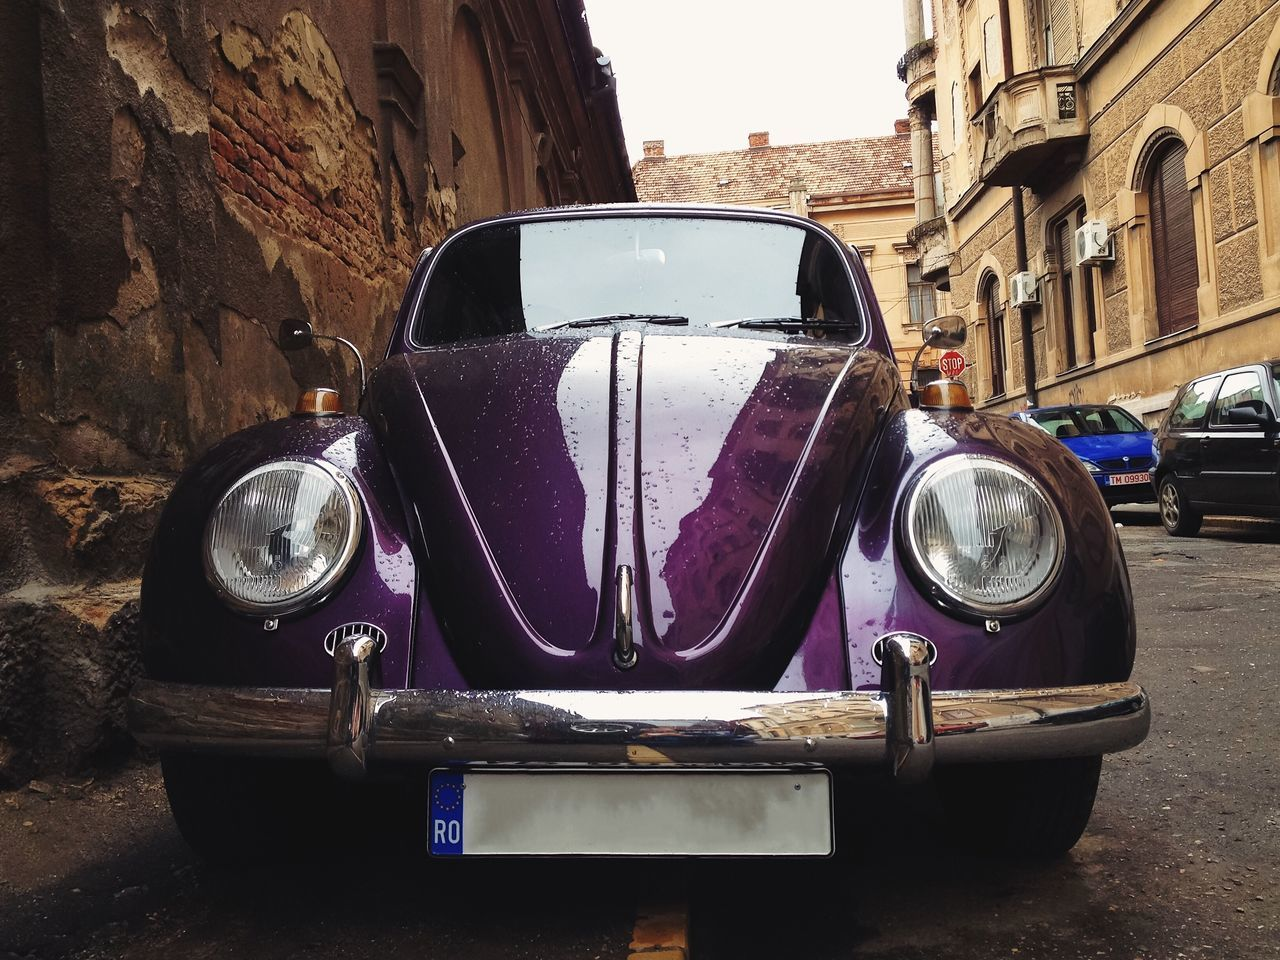 Vintage beauty... Old-fashioned Land Vehicle Transportation Stationary Collector's Car Beetle Volkswagen Beetle My Favorite Photo Details Of My Life Fresh On Eyeem  Found On The Roll Made In Romania Auto Automotive Automobile Car Purple Vscocam Close-up City Urban Reflection VSCO Vintage Cars Vintage Car